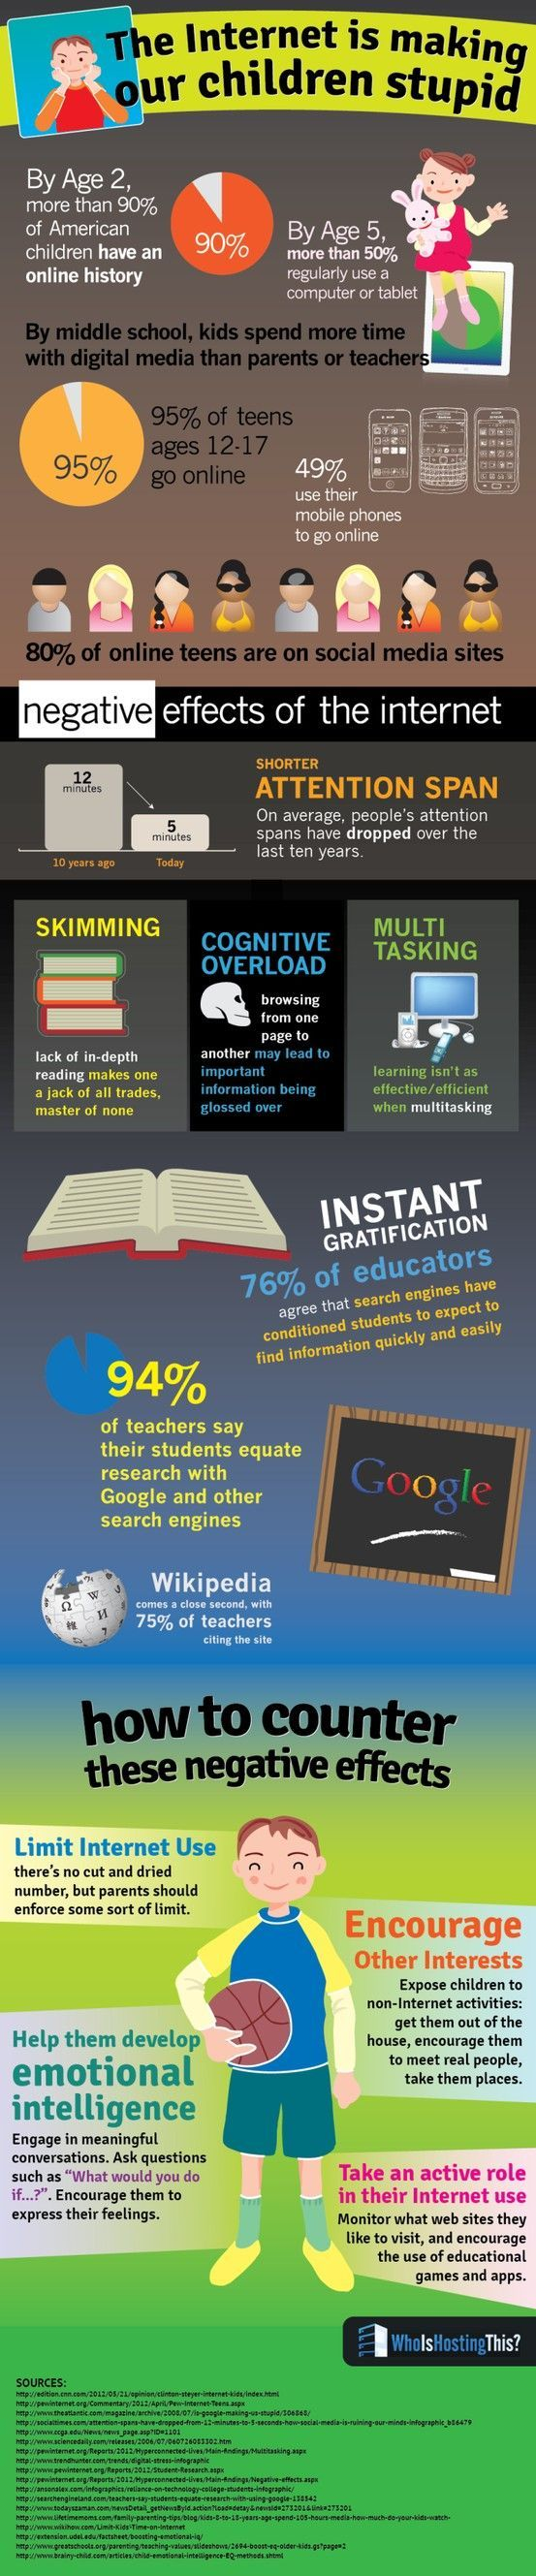 The internet is making our children stupid #infografia #infographic #education